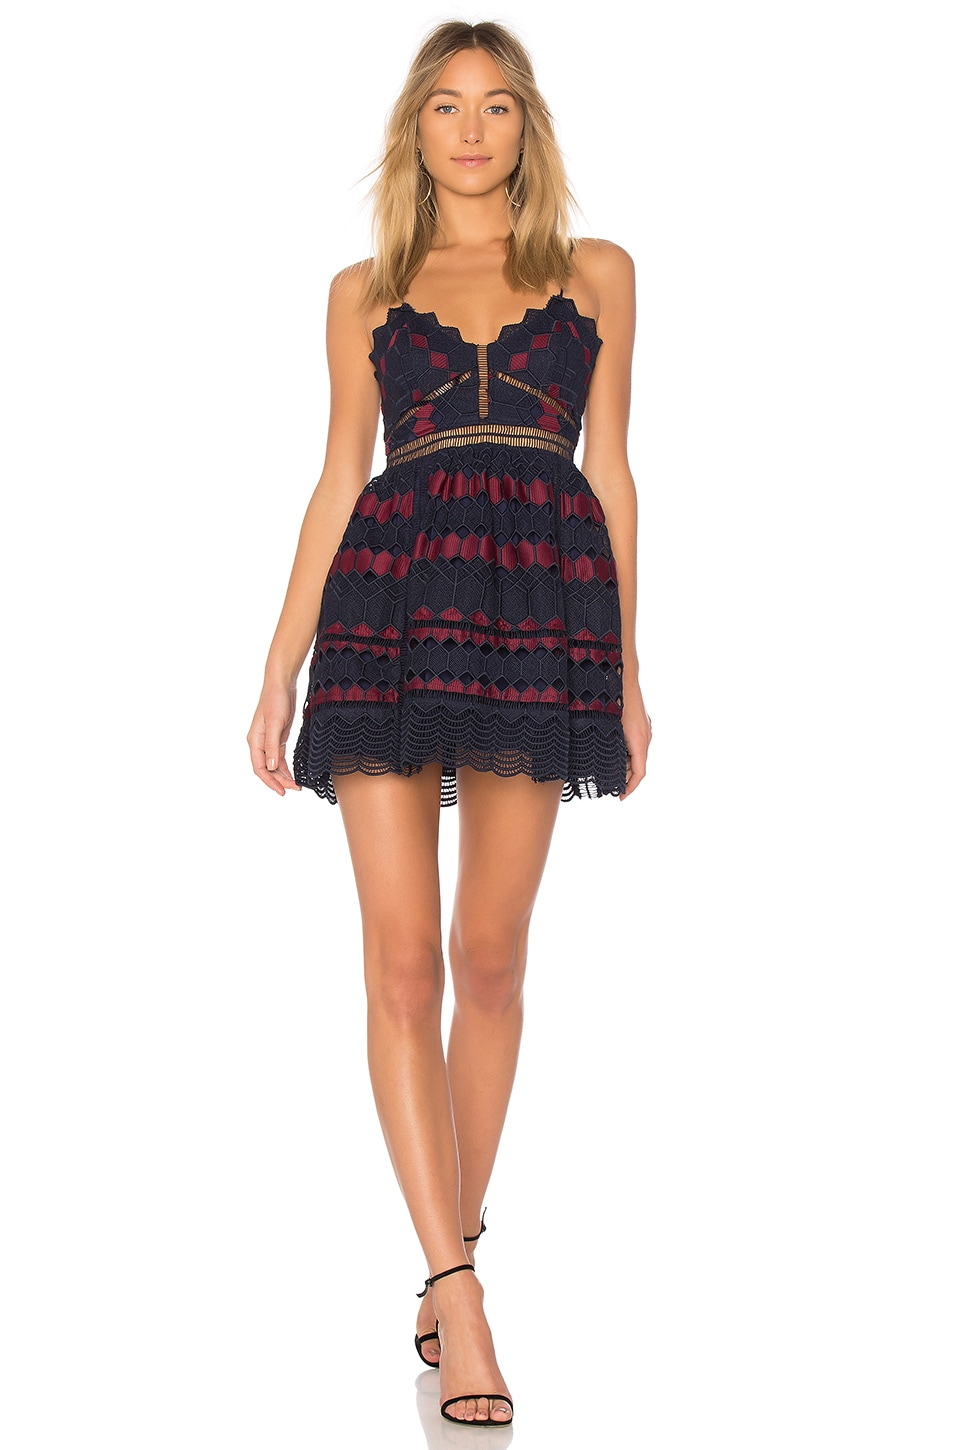 X by NBD Pearl Dress in Navy & Red